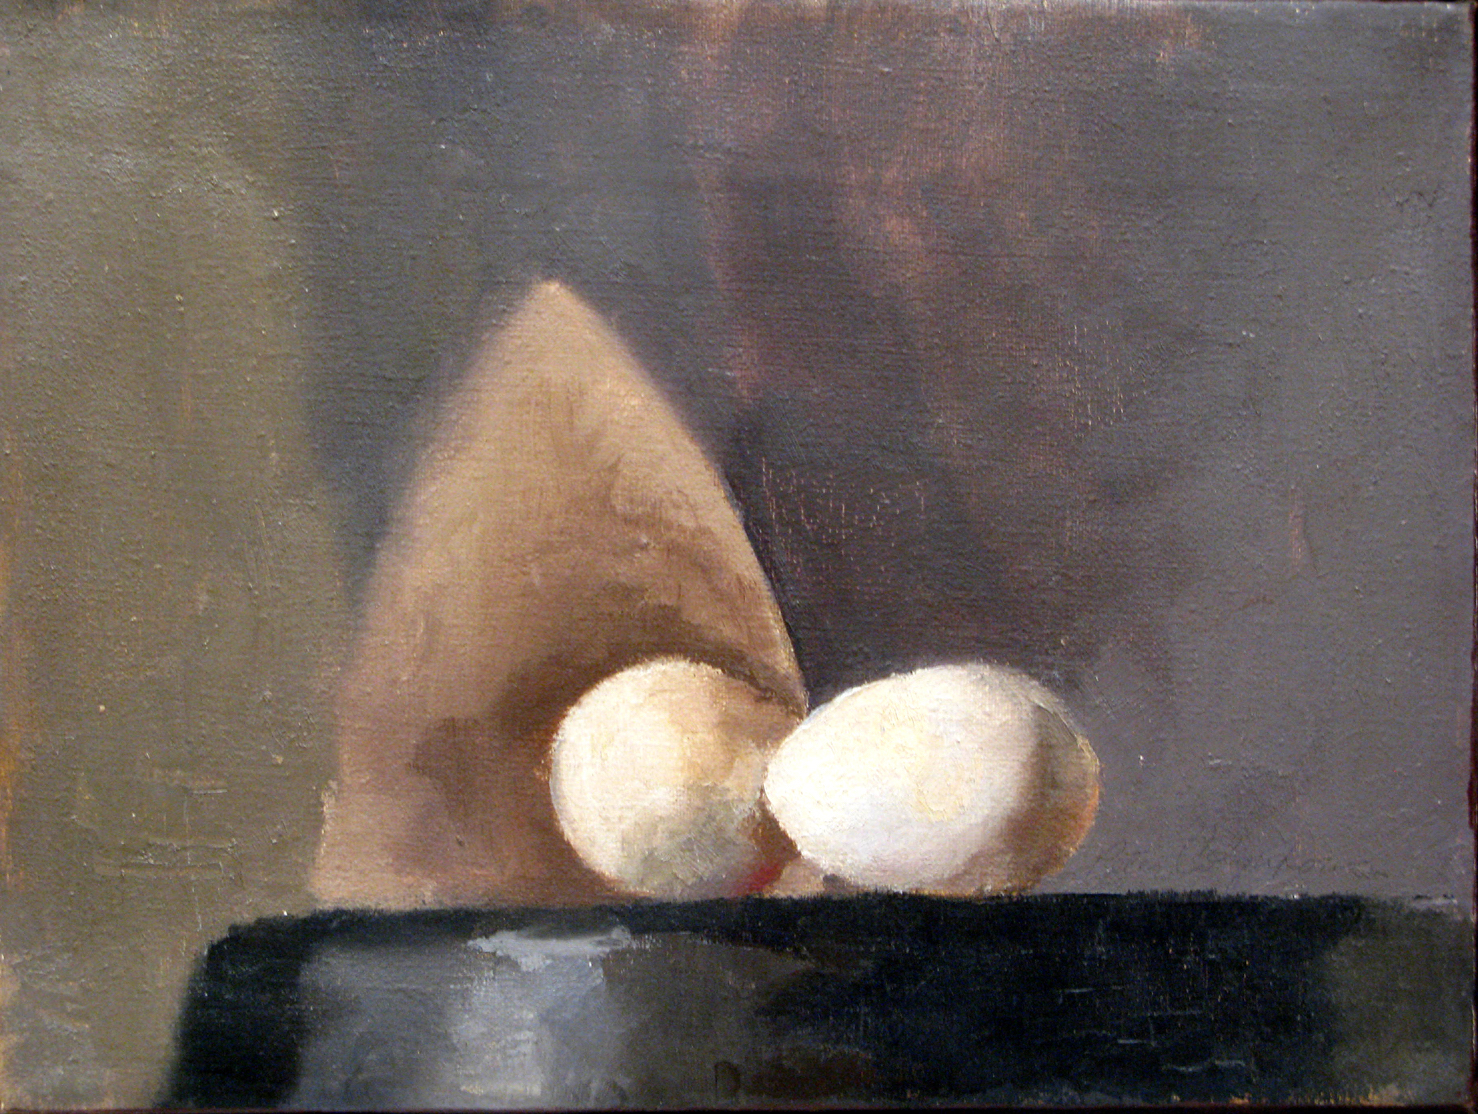 Eggs, 9 x 12 inches, oil on linen